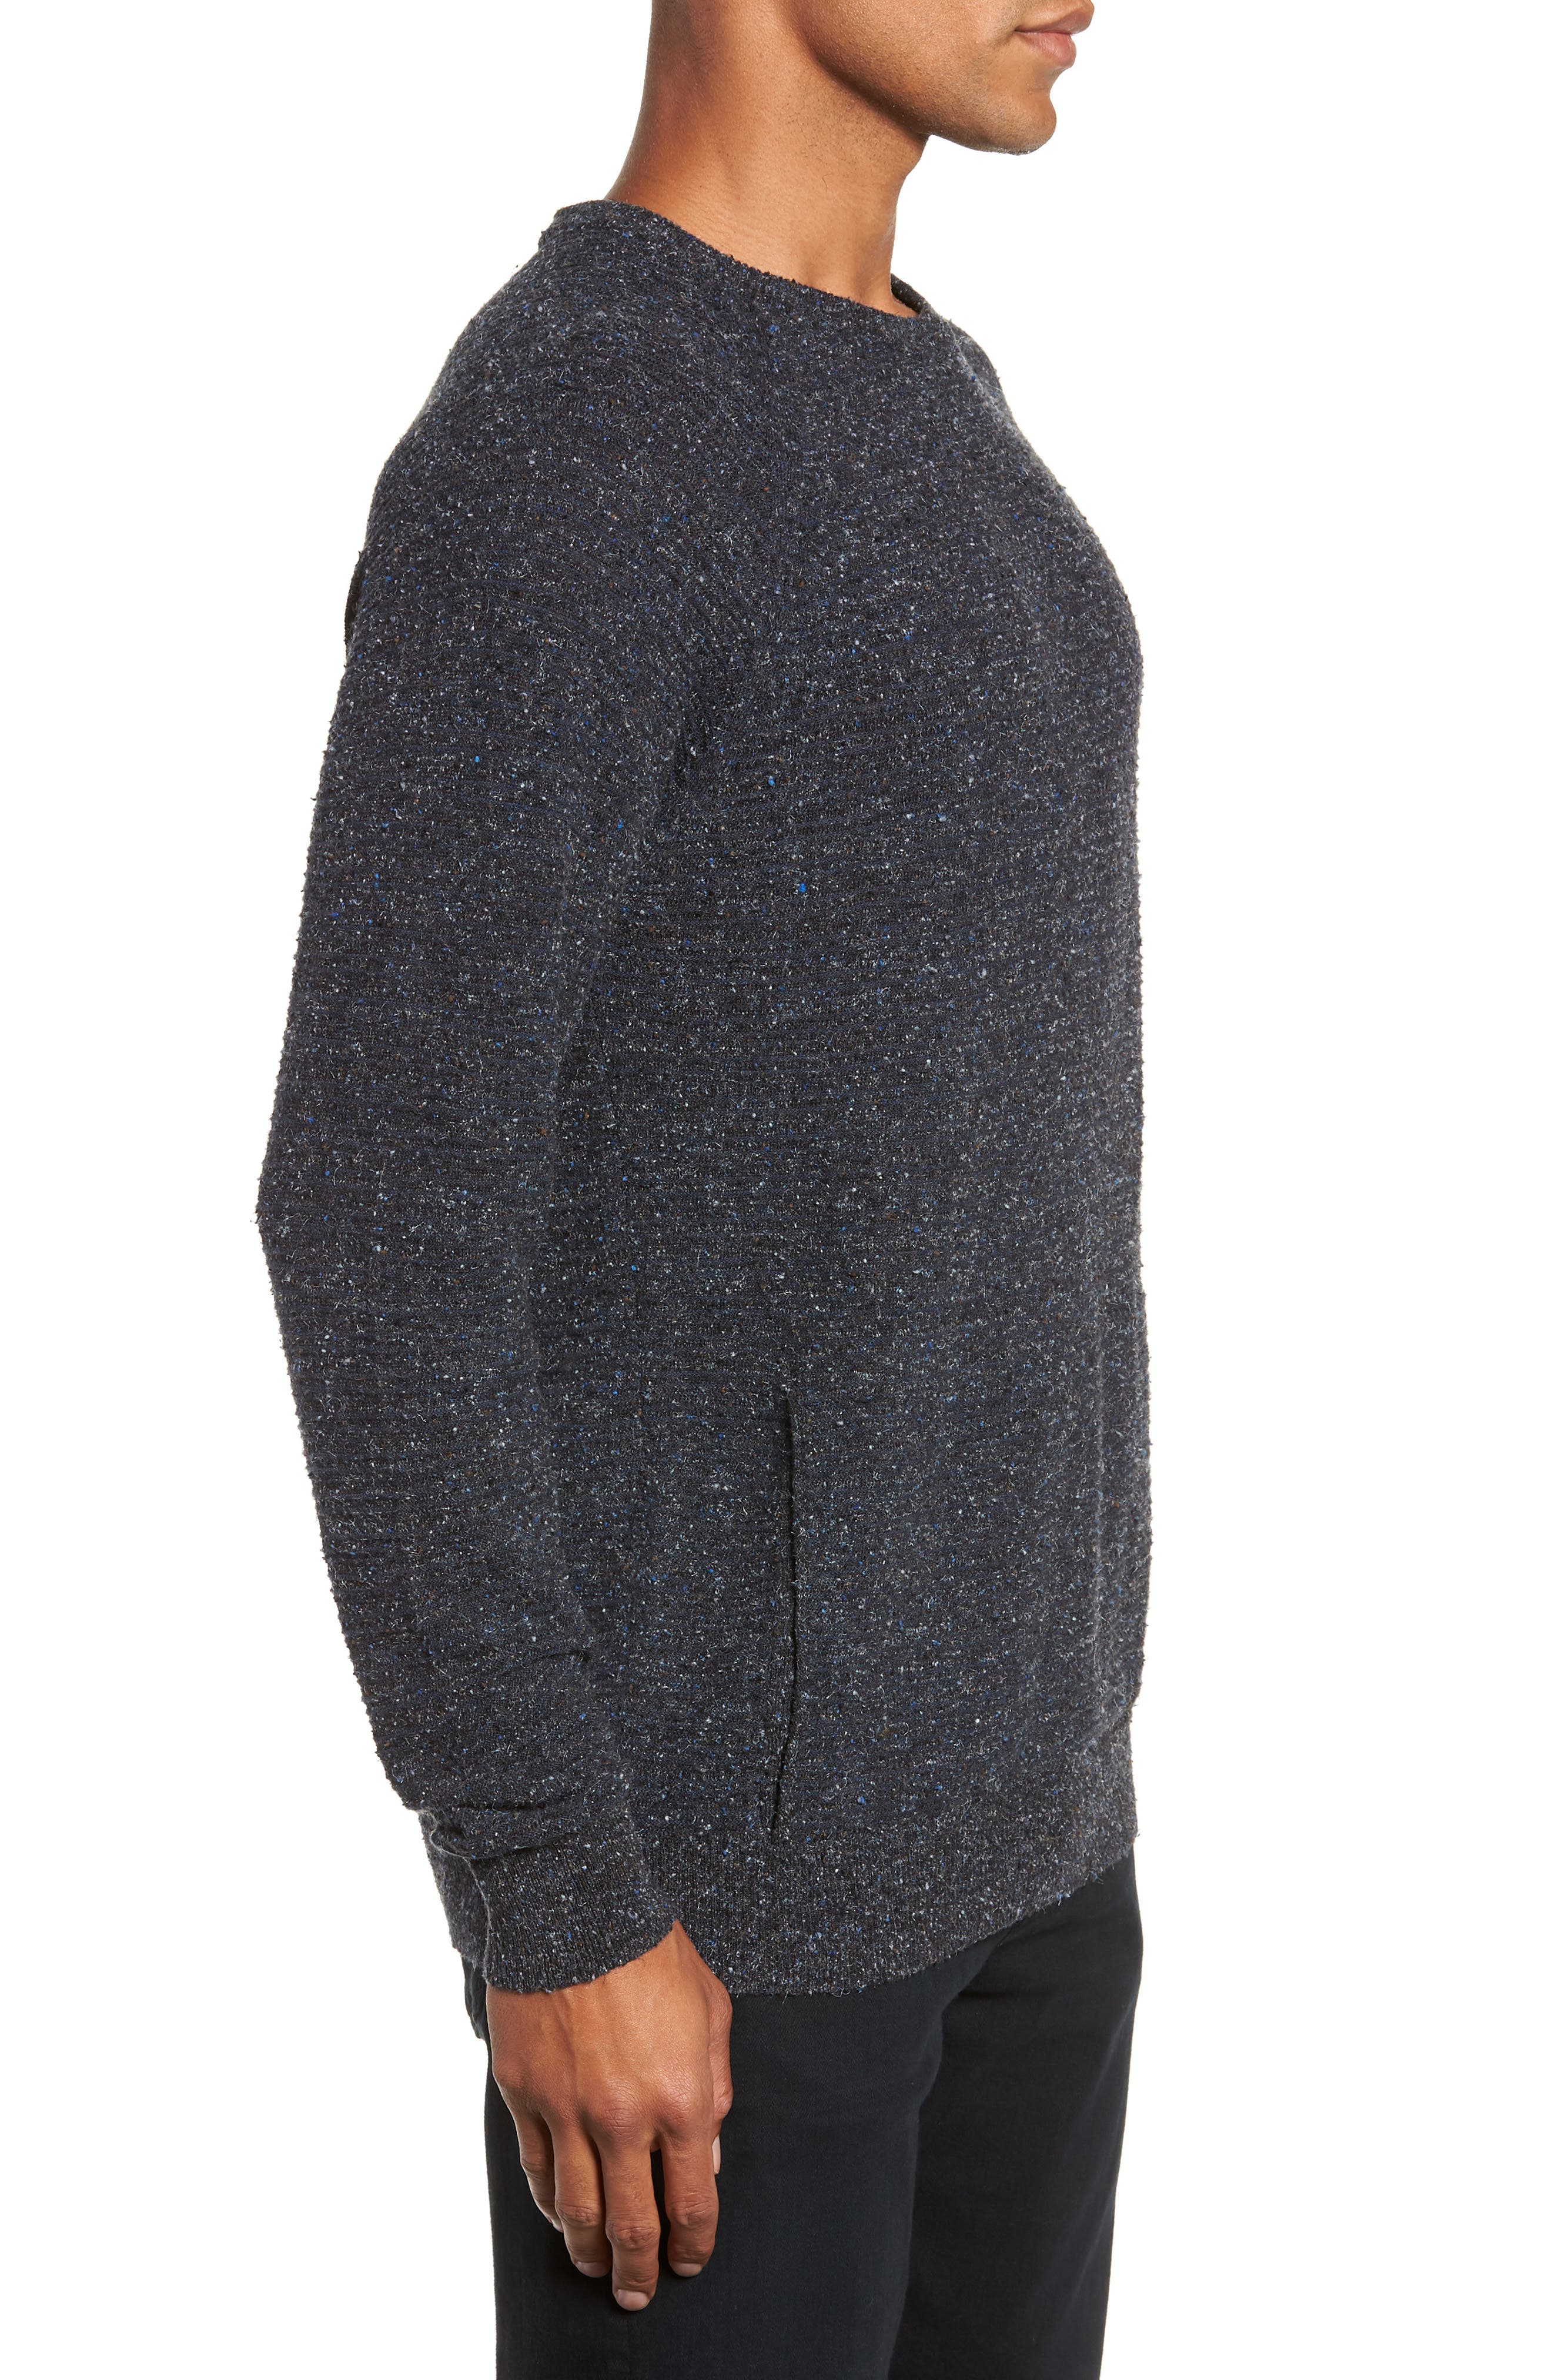 Speckle Stripe Sweater,                             Alternate thumbnail 3, color,                             NAVY/ CHARCOAL